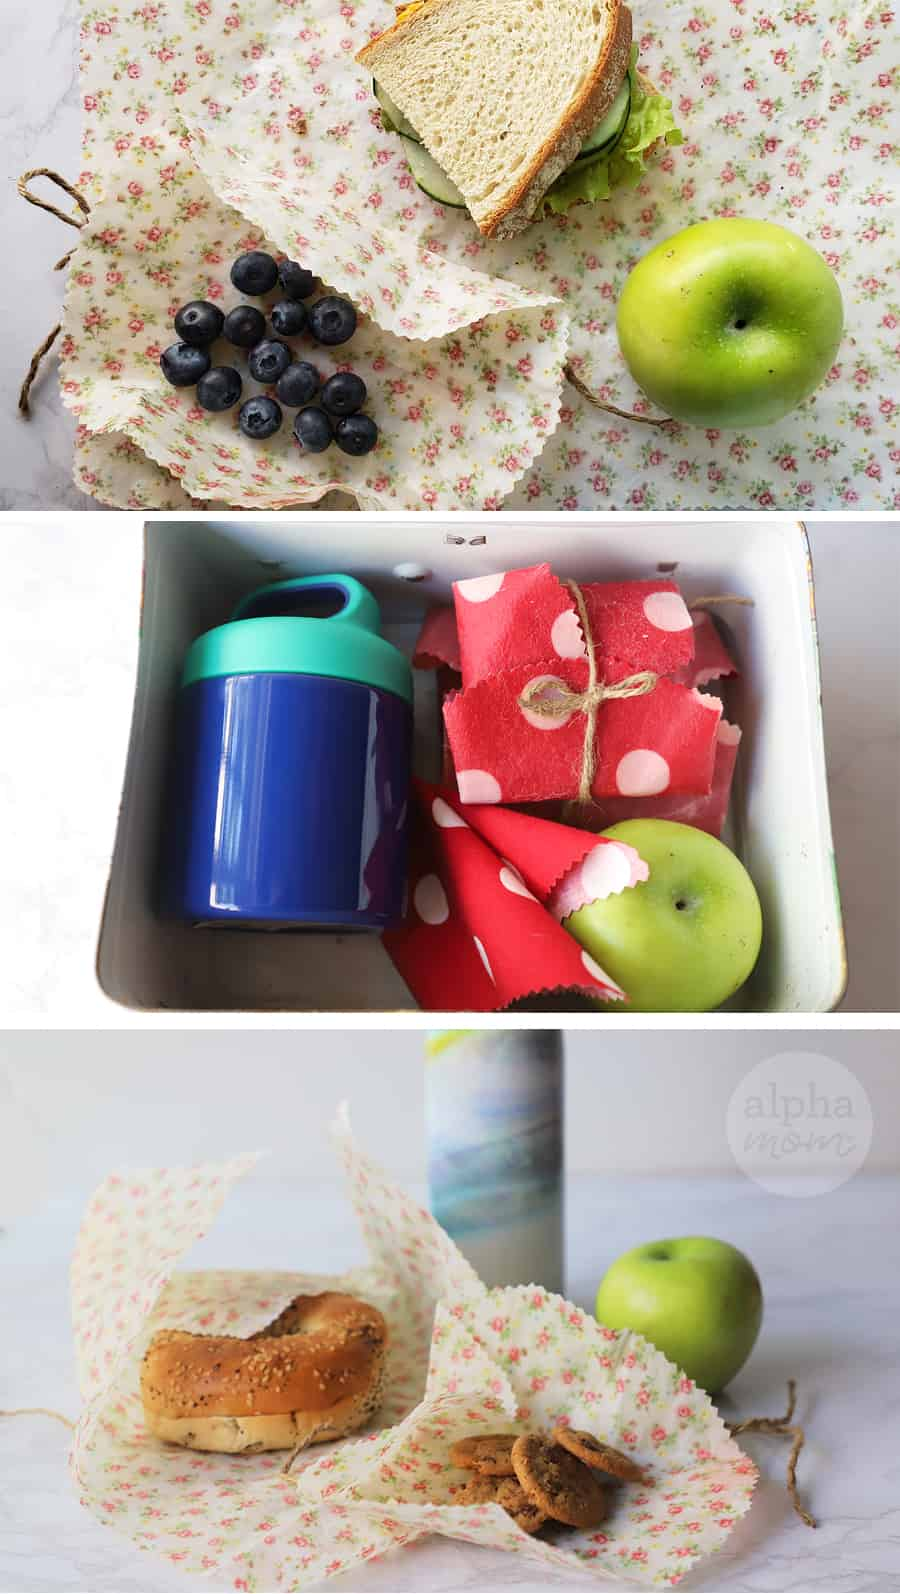 Triptych of school lunch sandwich and fruit wrapped in reusable Waxed-Fabric Food Wraps